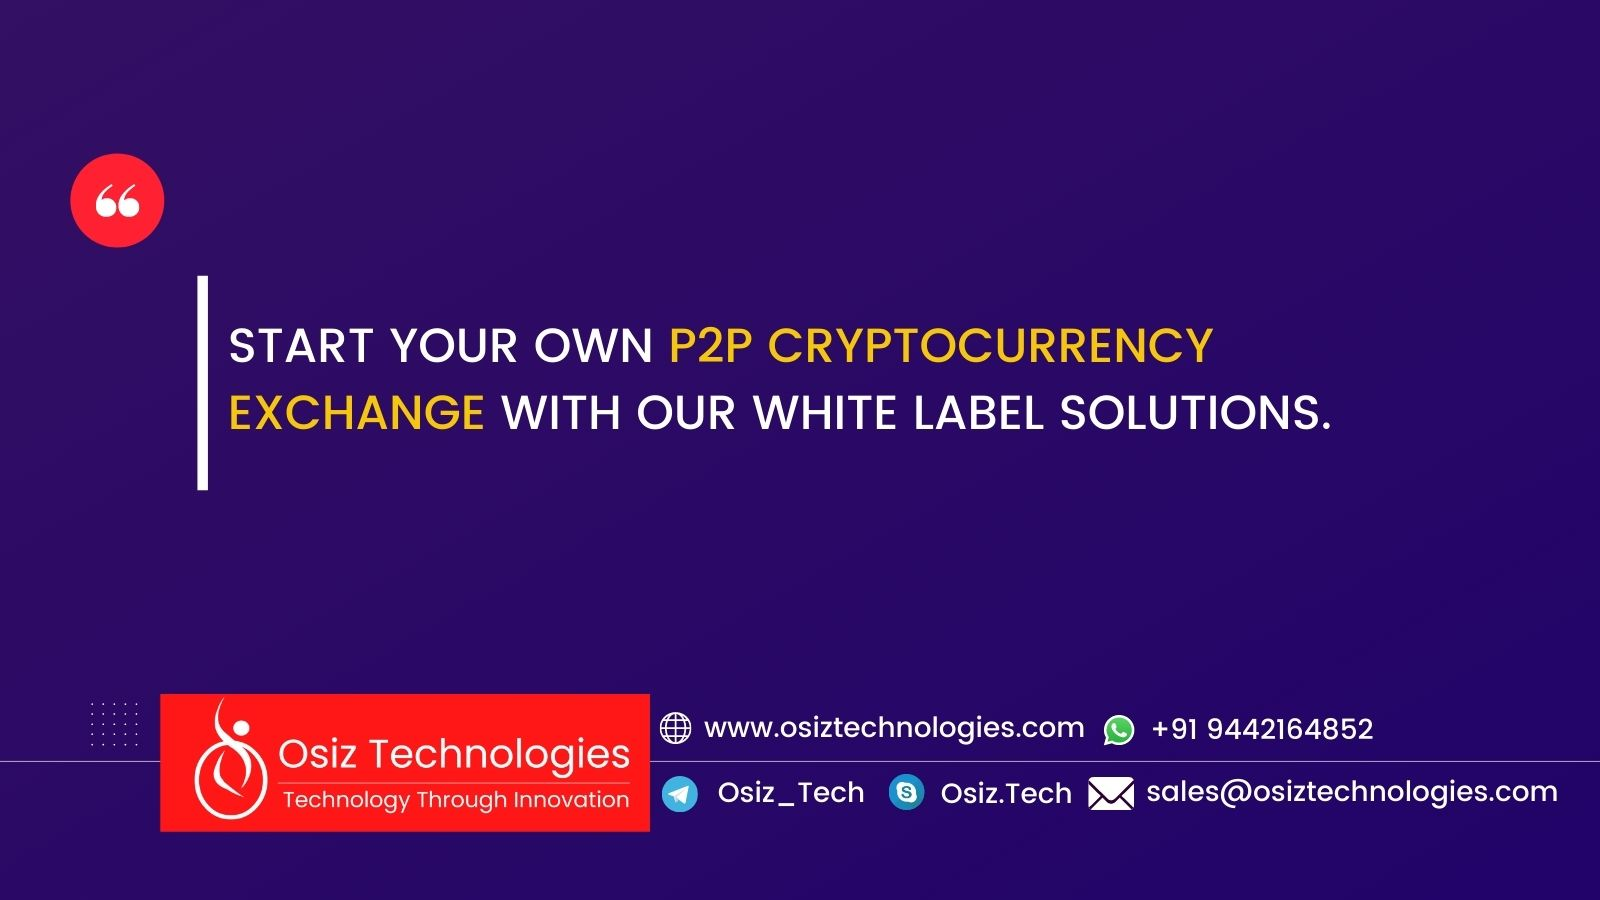 Start your own P2P cryptocurrency exchange platforms like Localbitcoins, Remitano, and Paxful with our white label solutions.